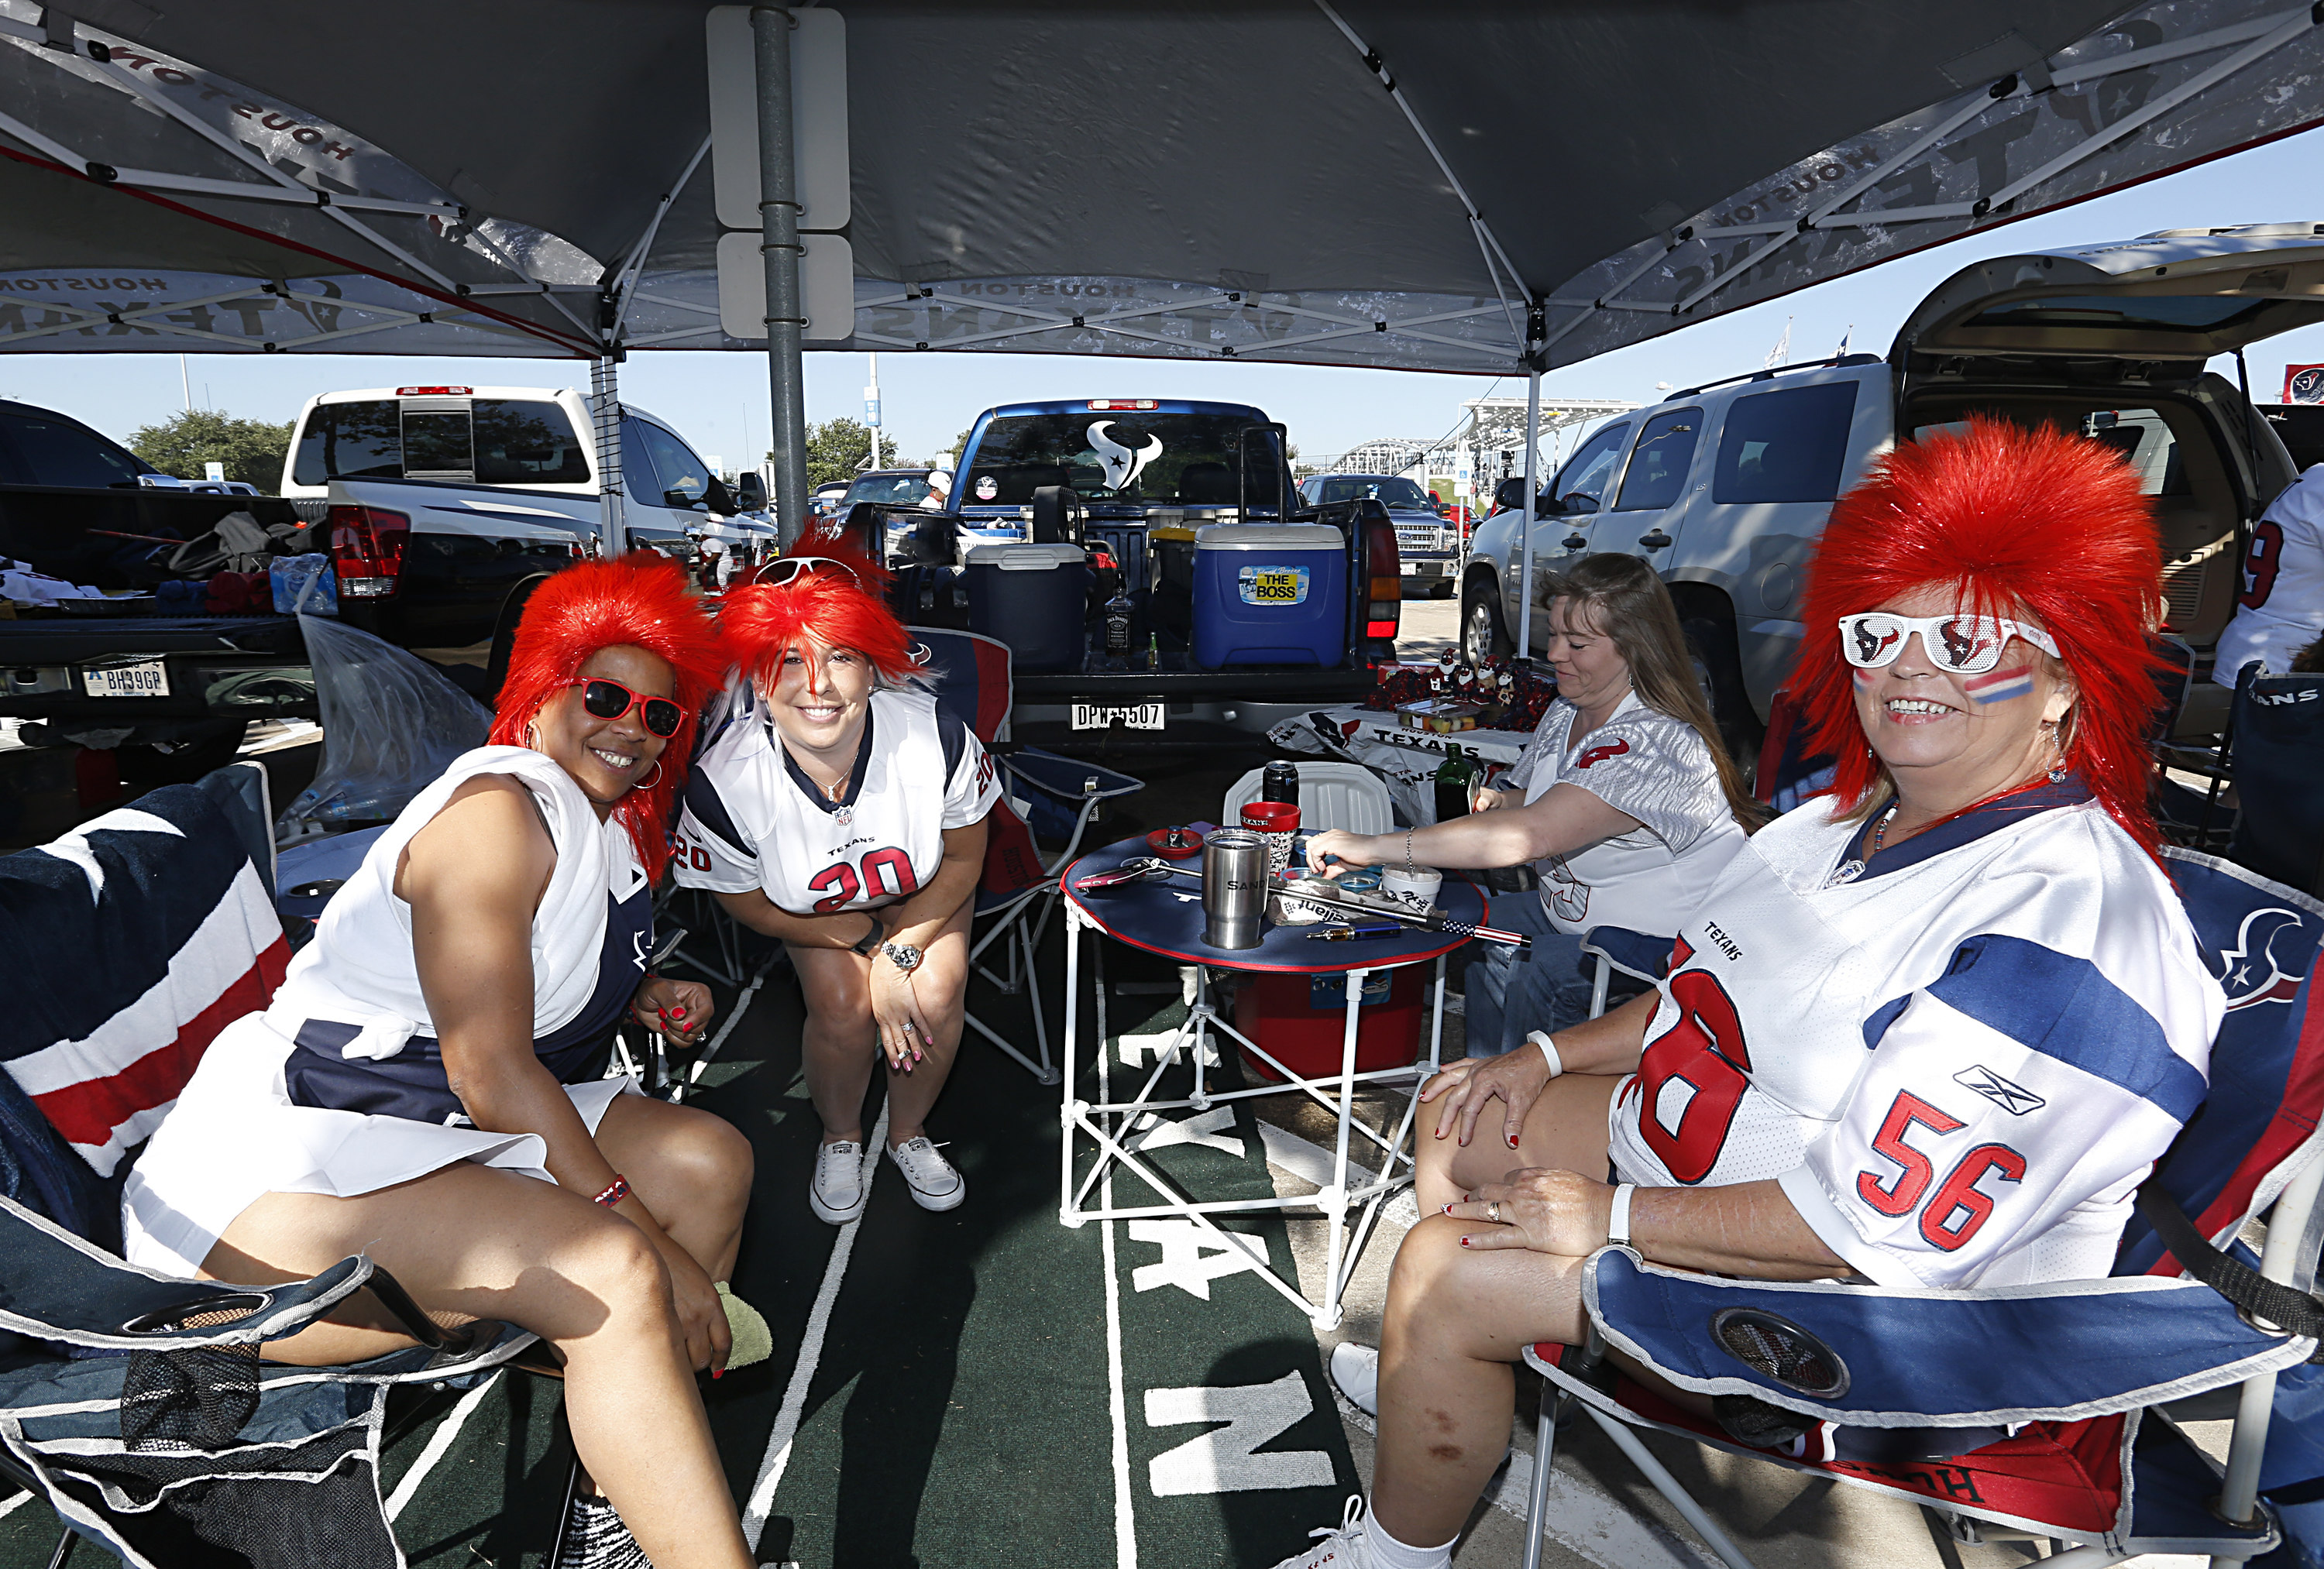 Even if the game is tough to watch, the tailgating should be sweet.